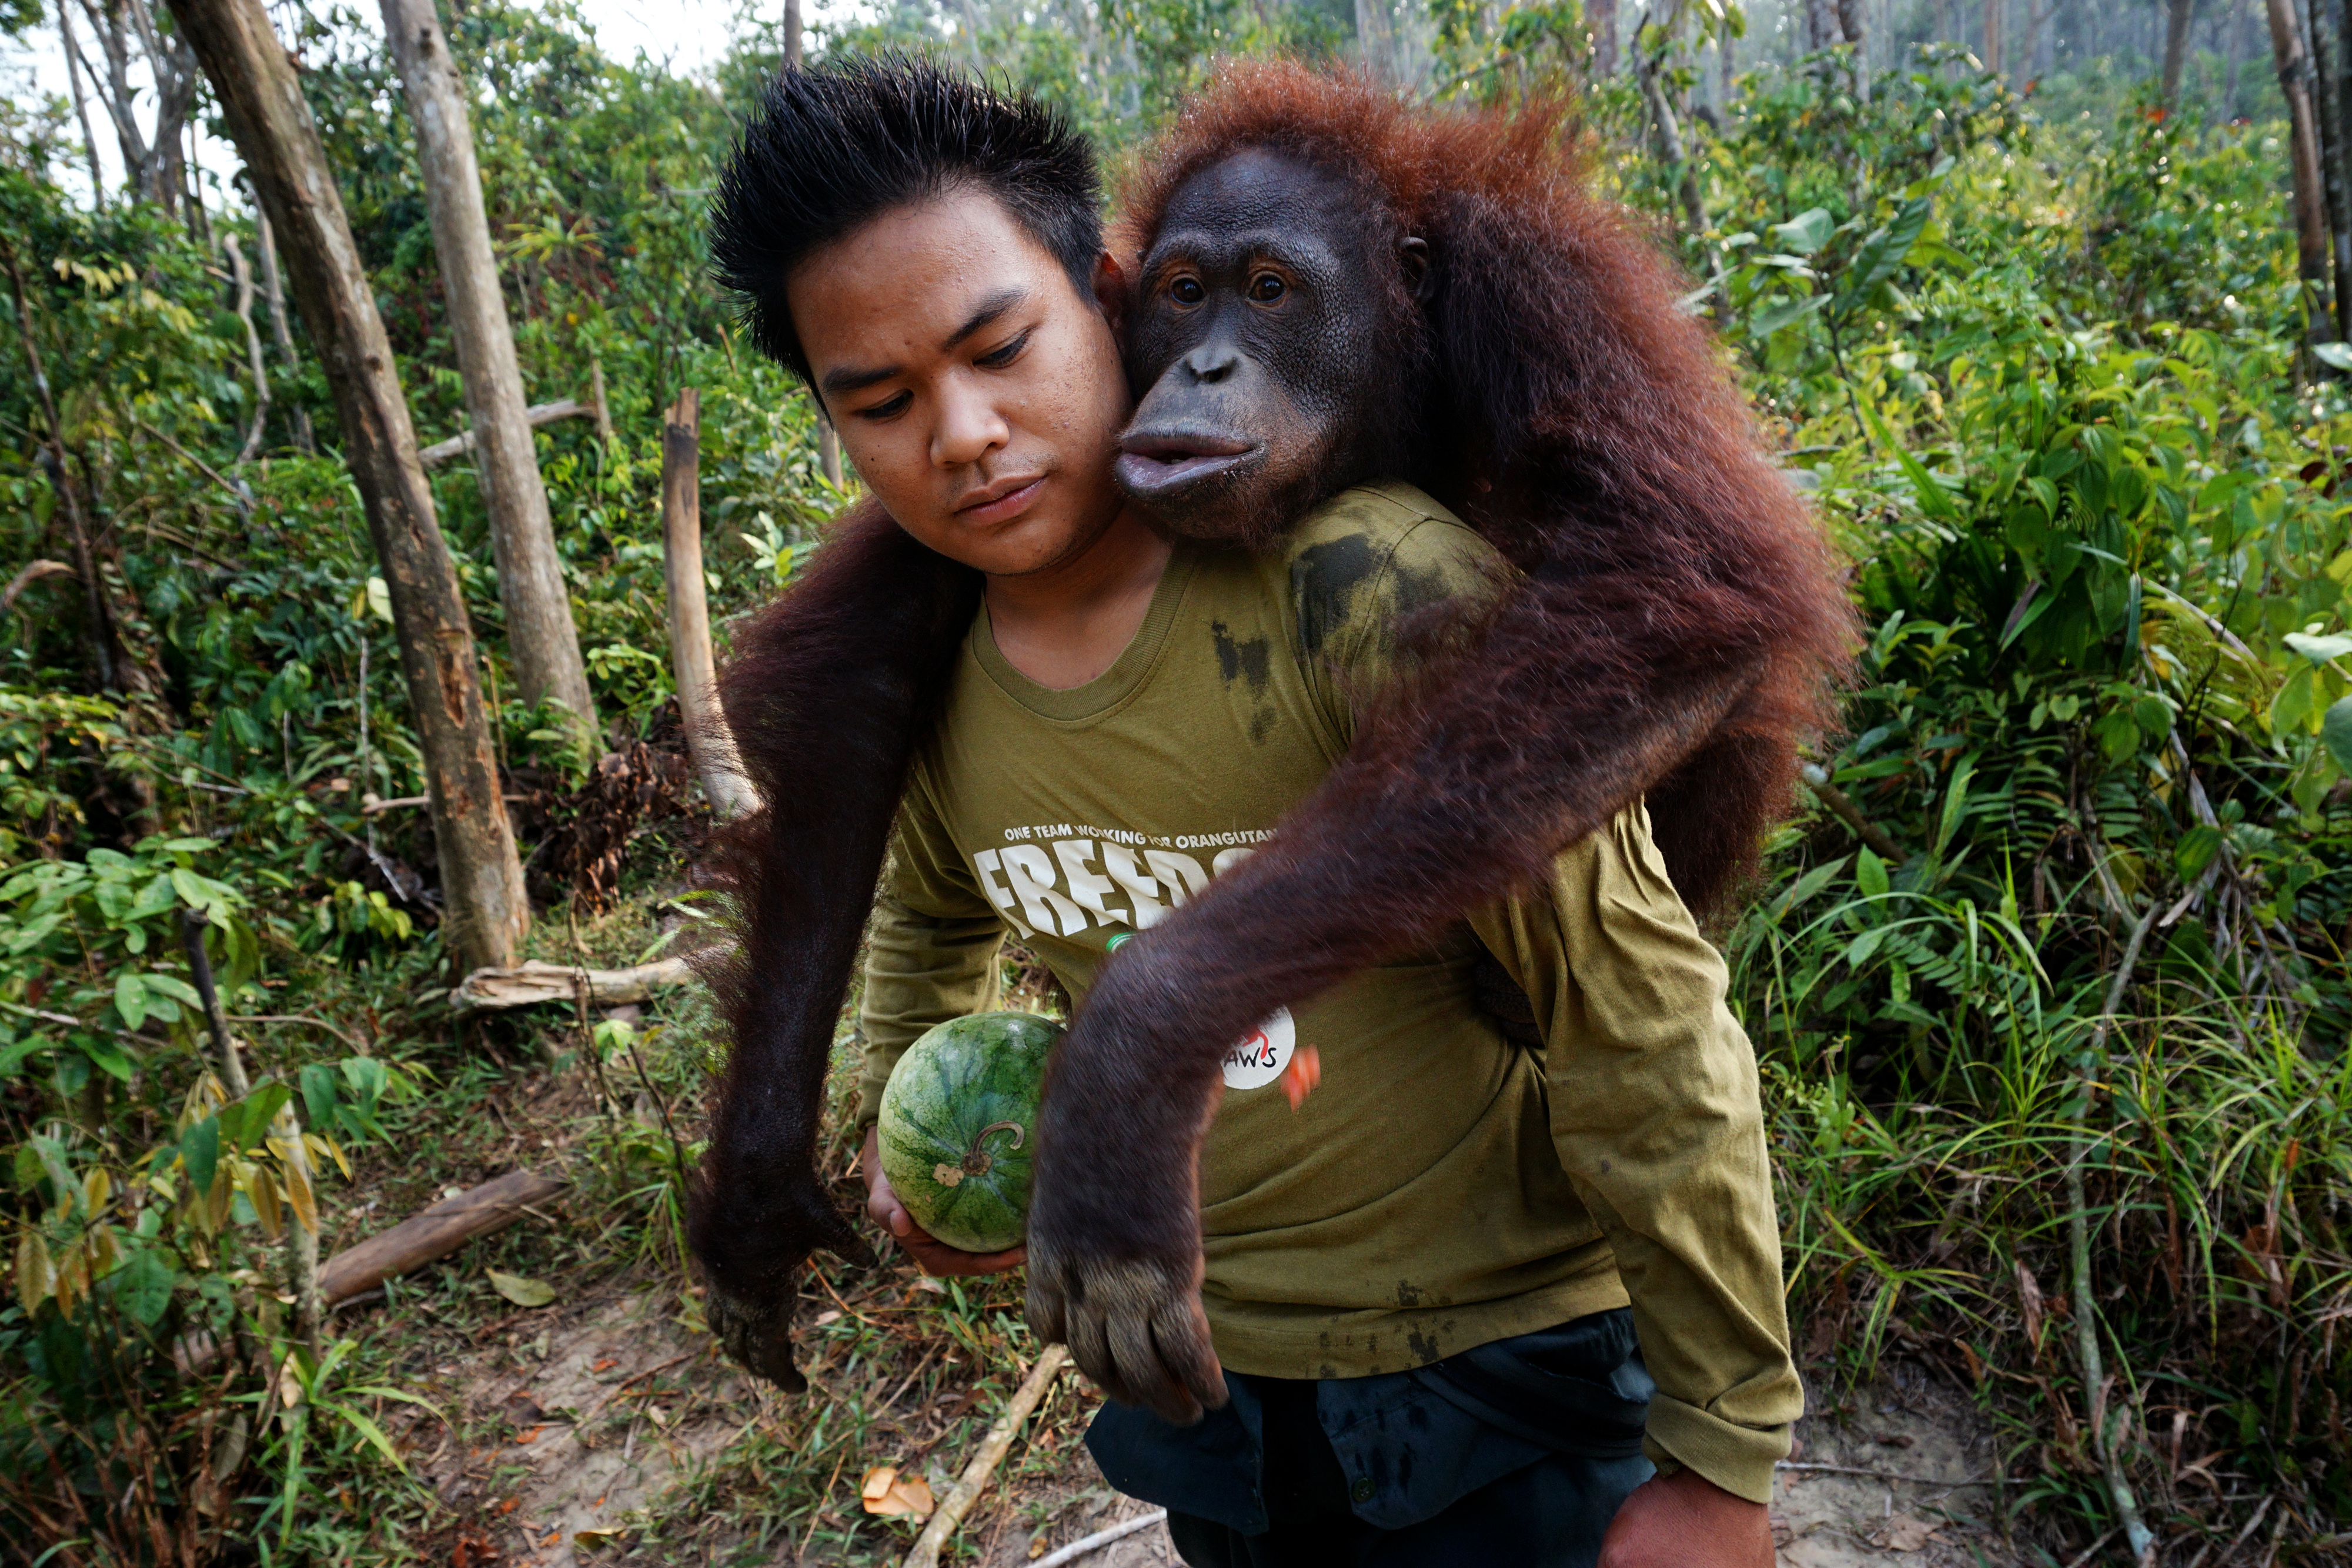 Almost Human: Orangutans in Indonesia